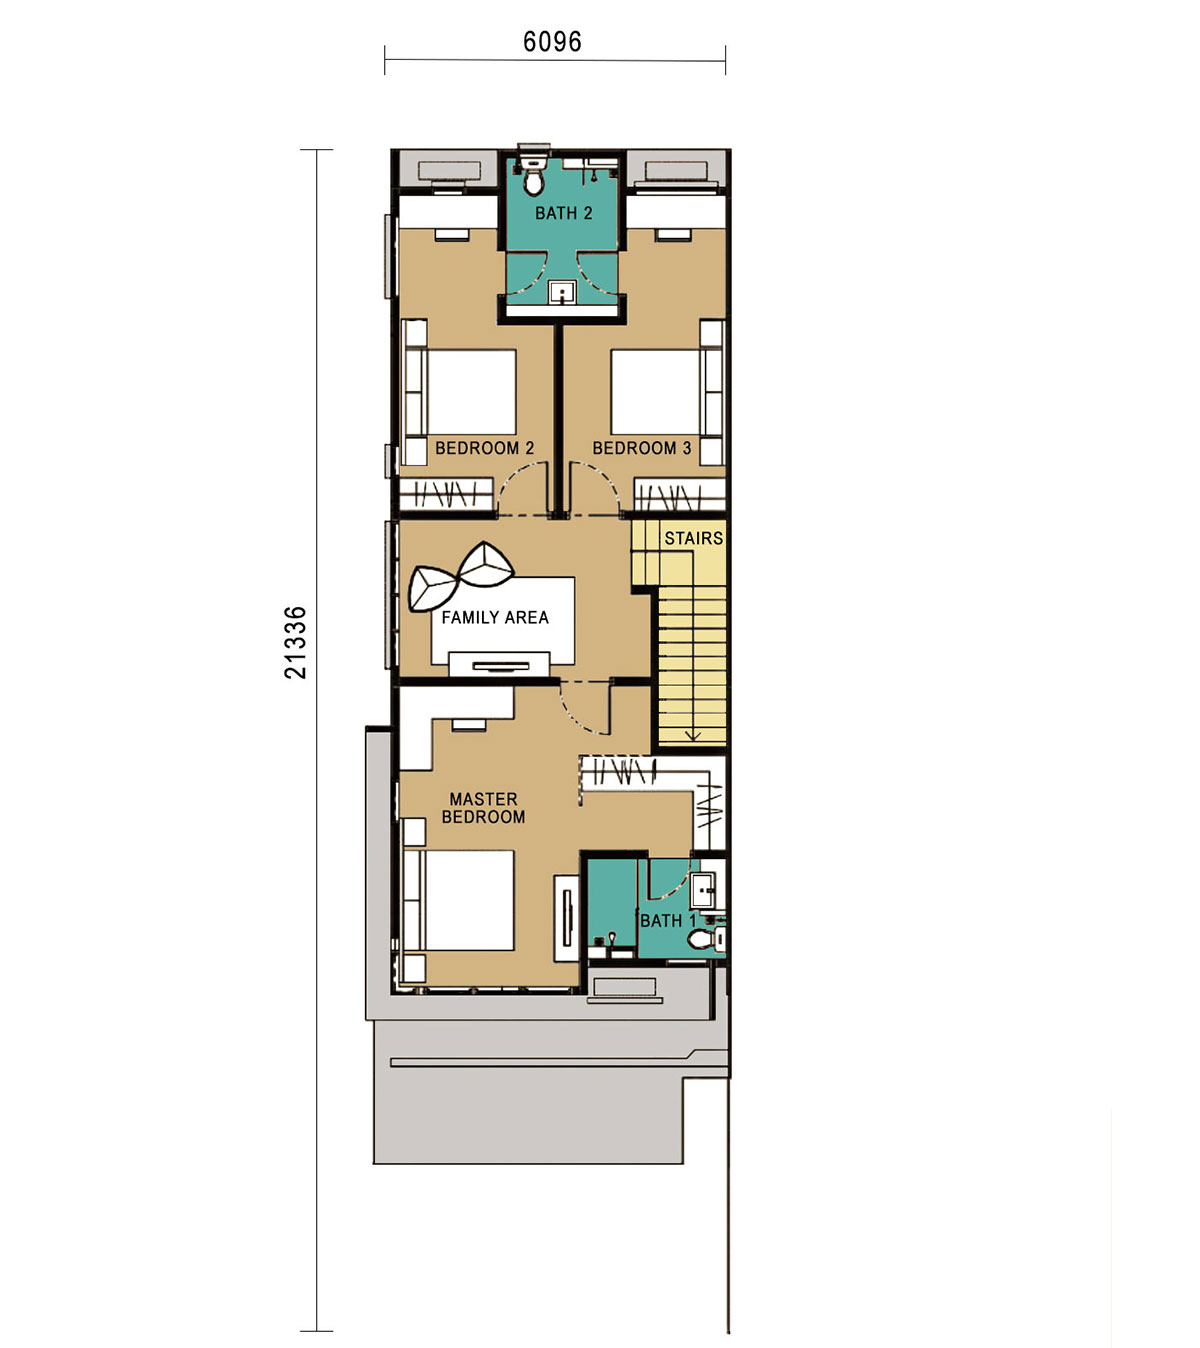 2-Storey Link Home - End Unit - First Floor